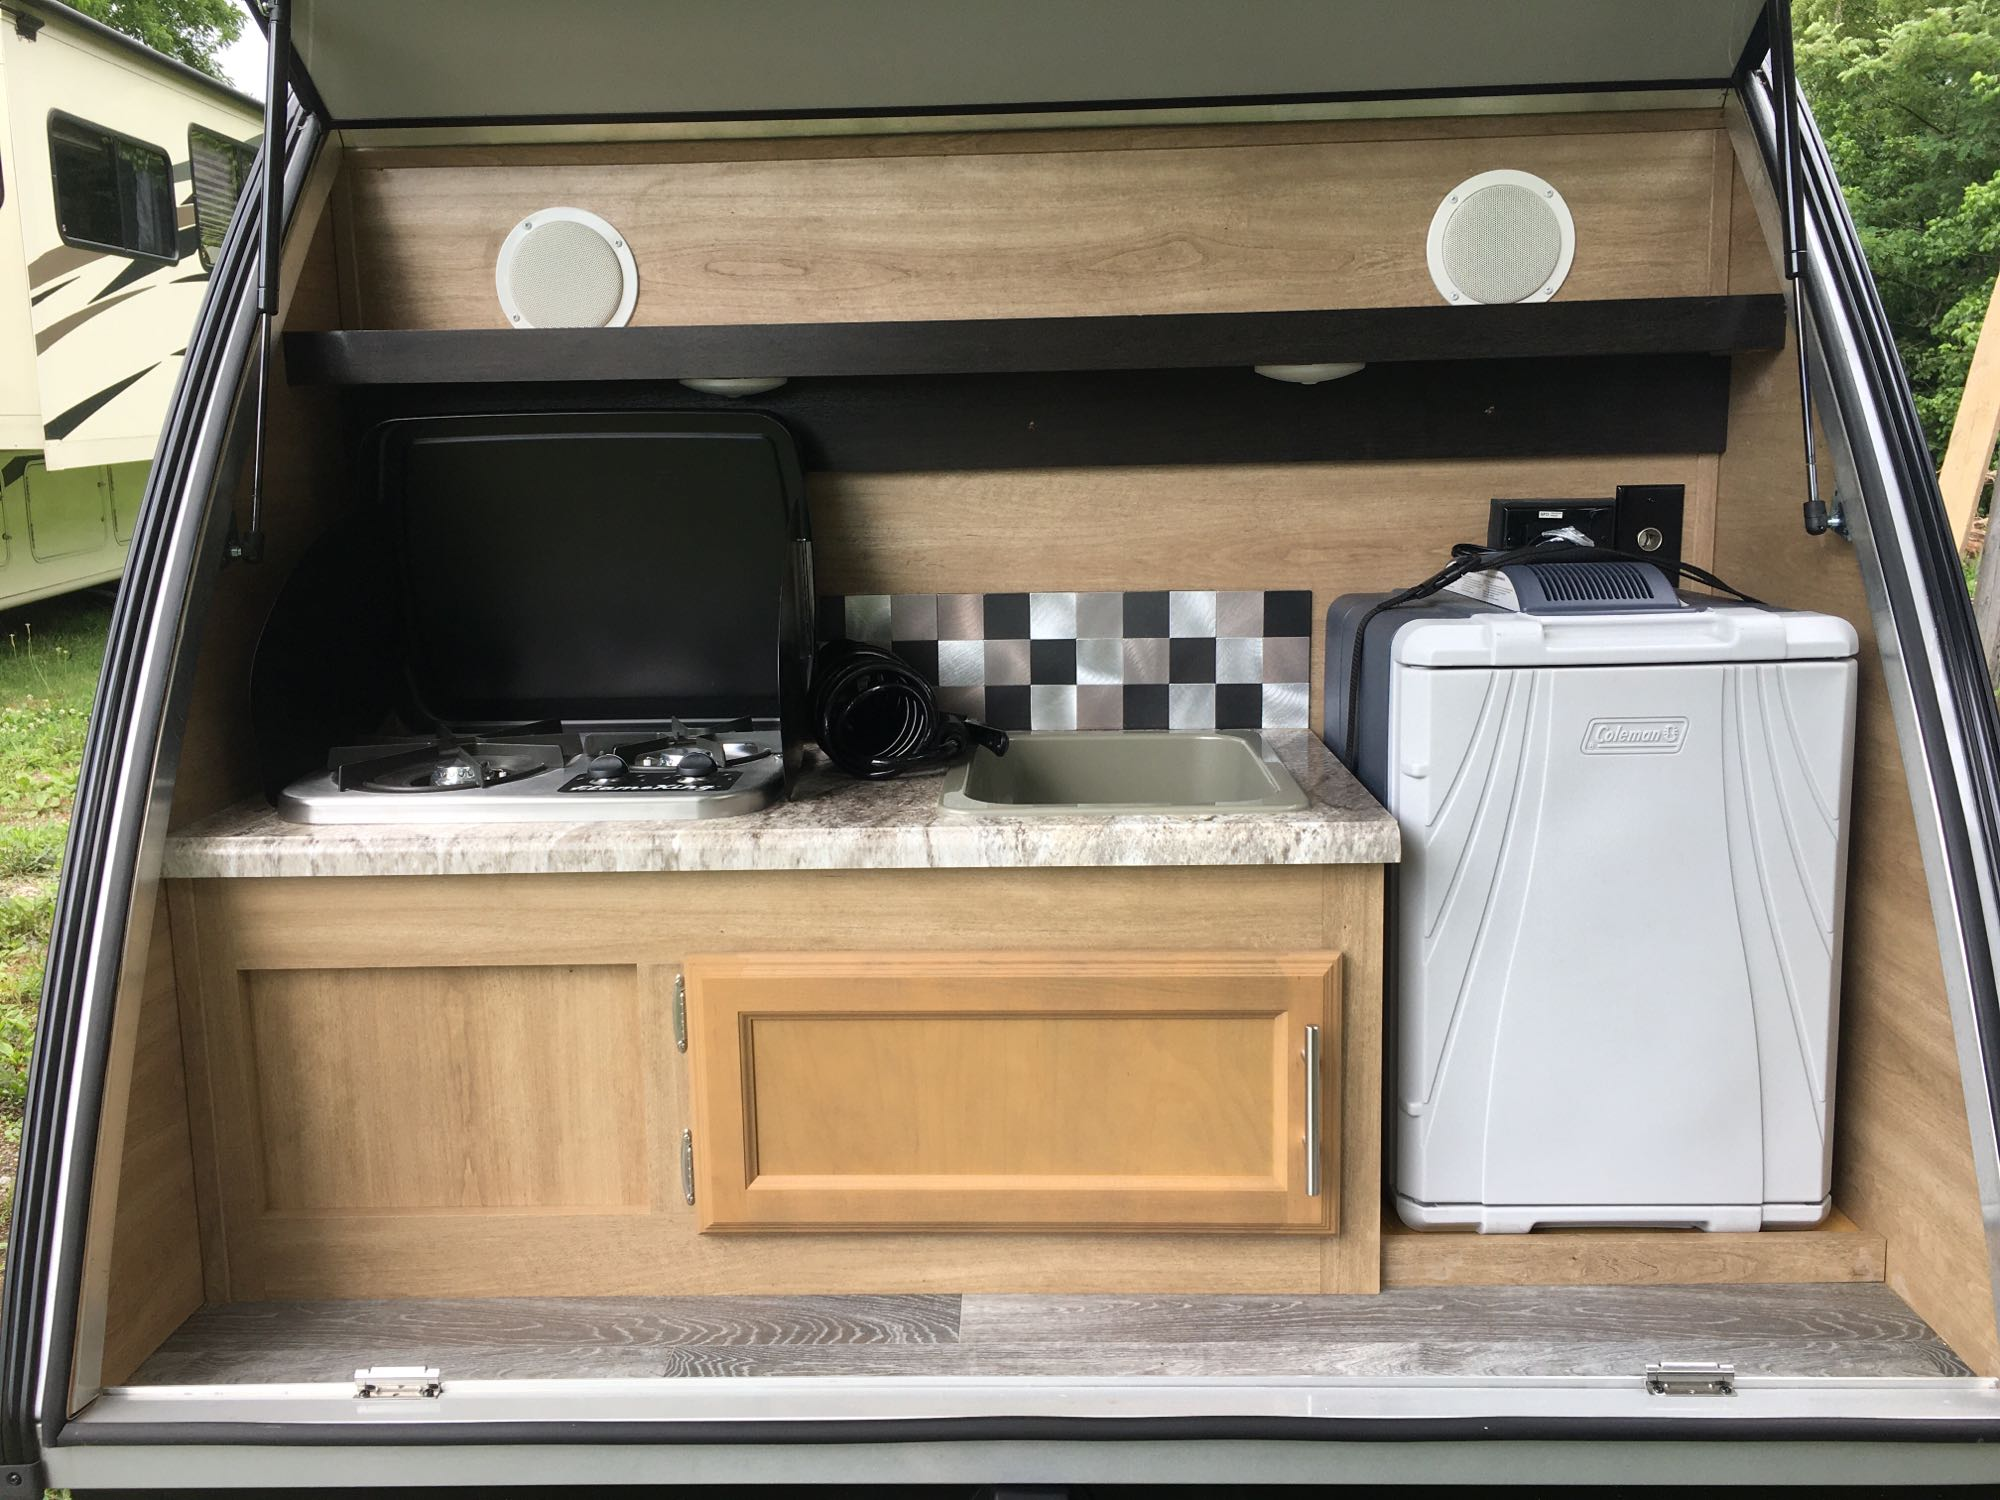 Cook top, sink, and refrigerator. Braxton Creek Bushwhacker 2020